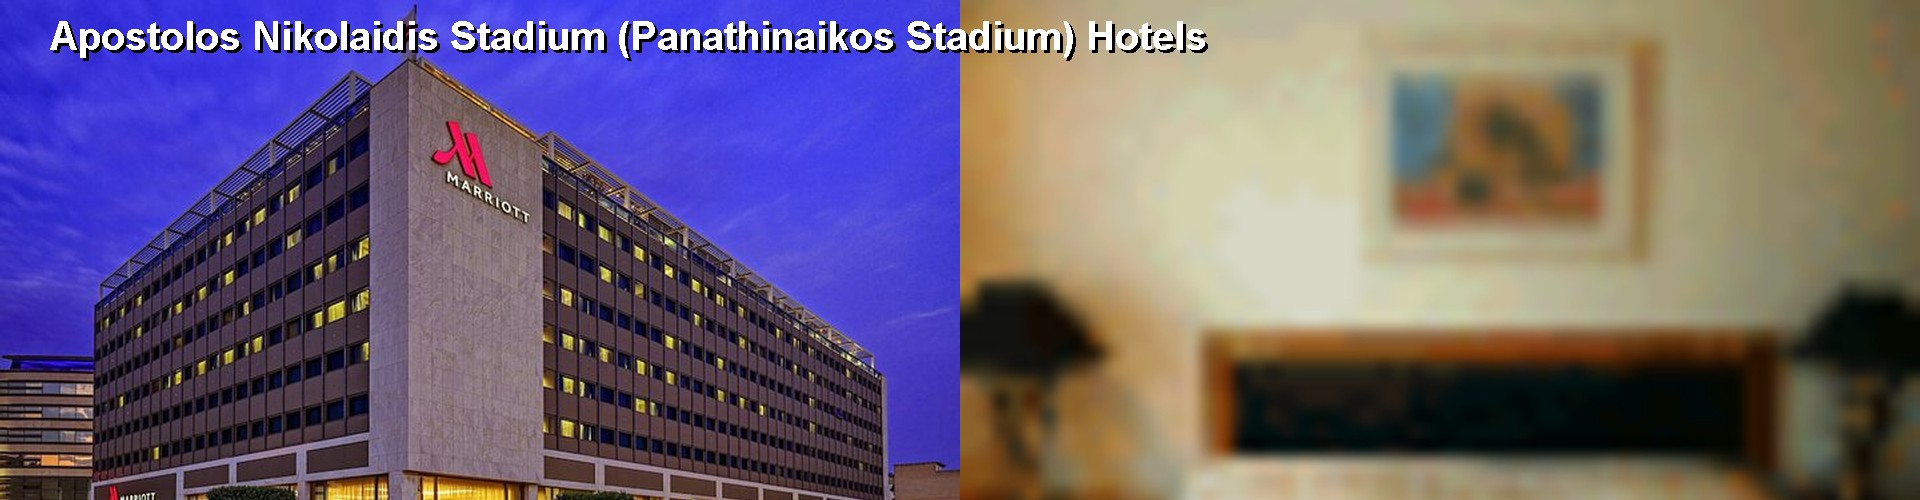 5 Best Hotels near Apostolos Nikolaidis Stadium (Panathinaikos Stadium)